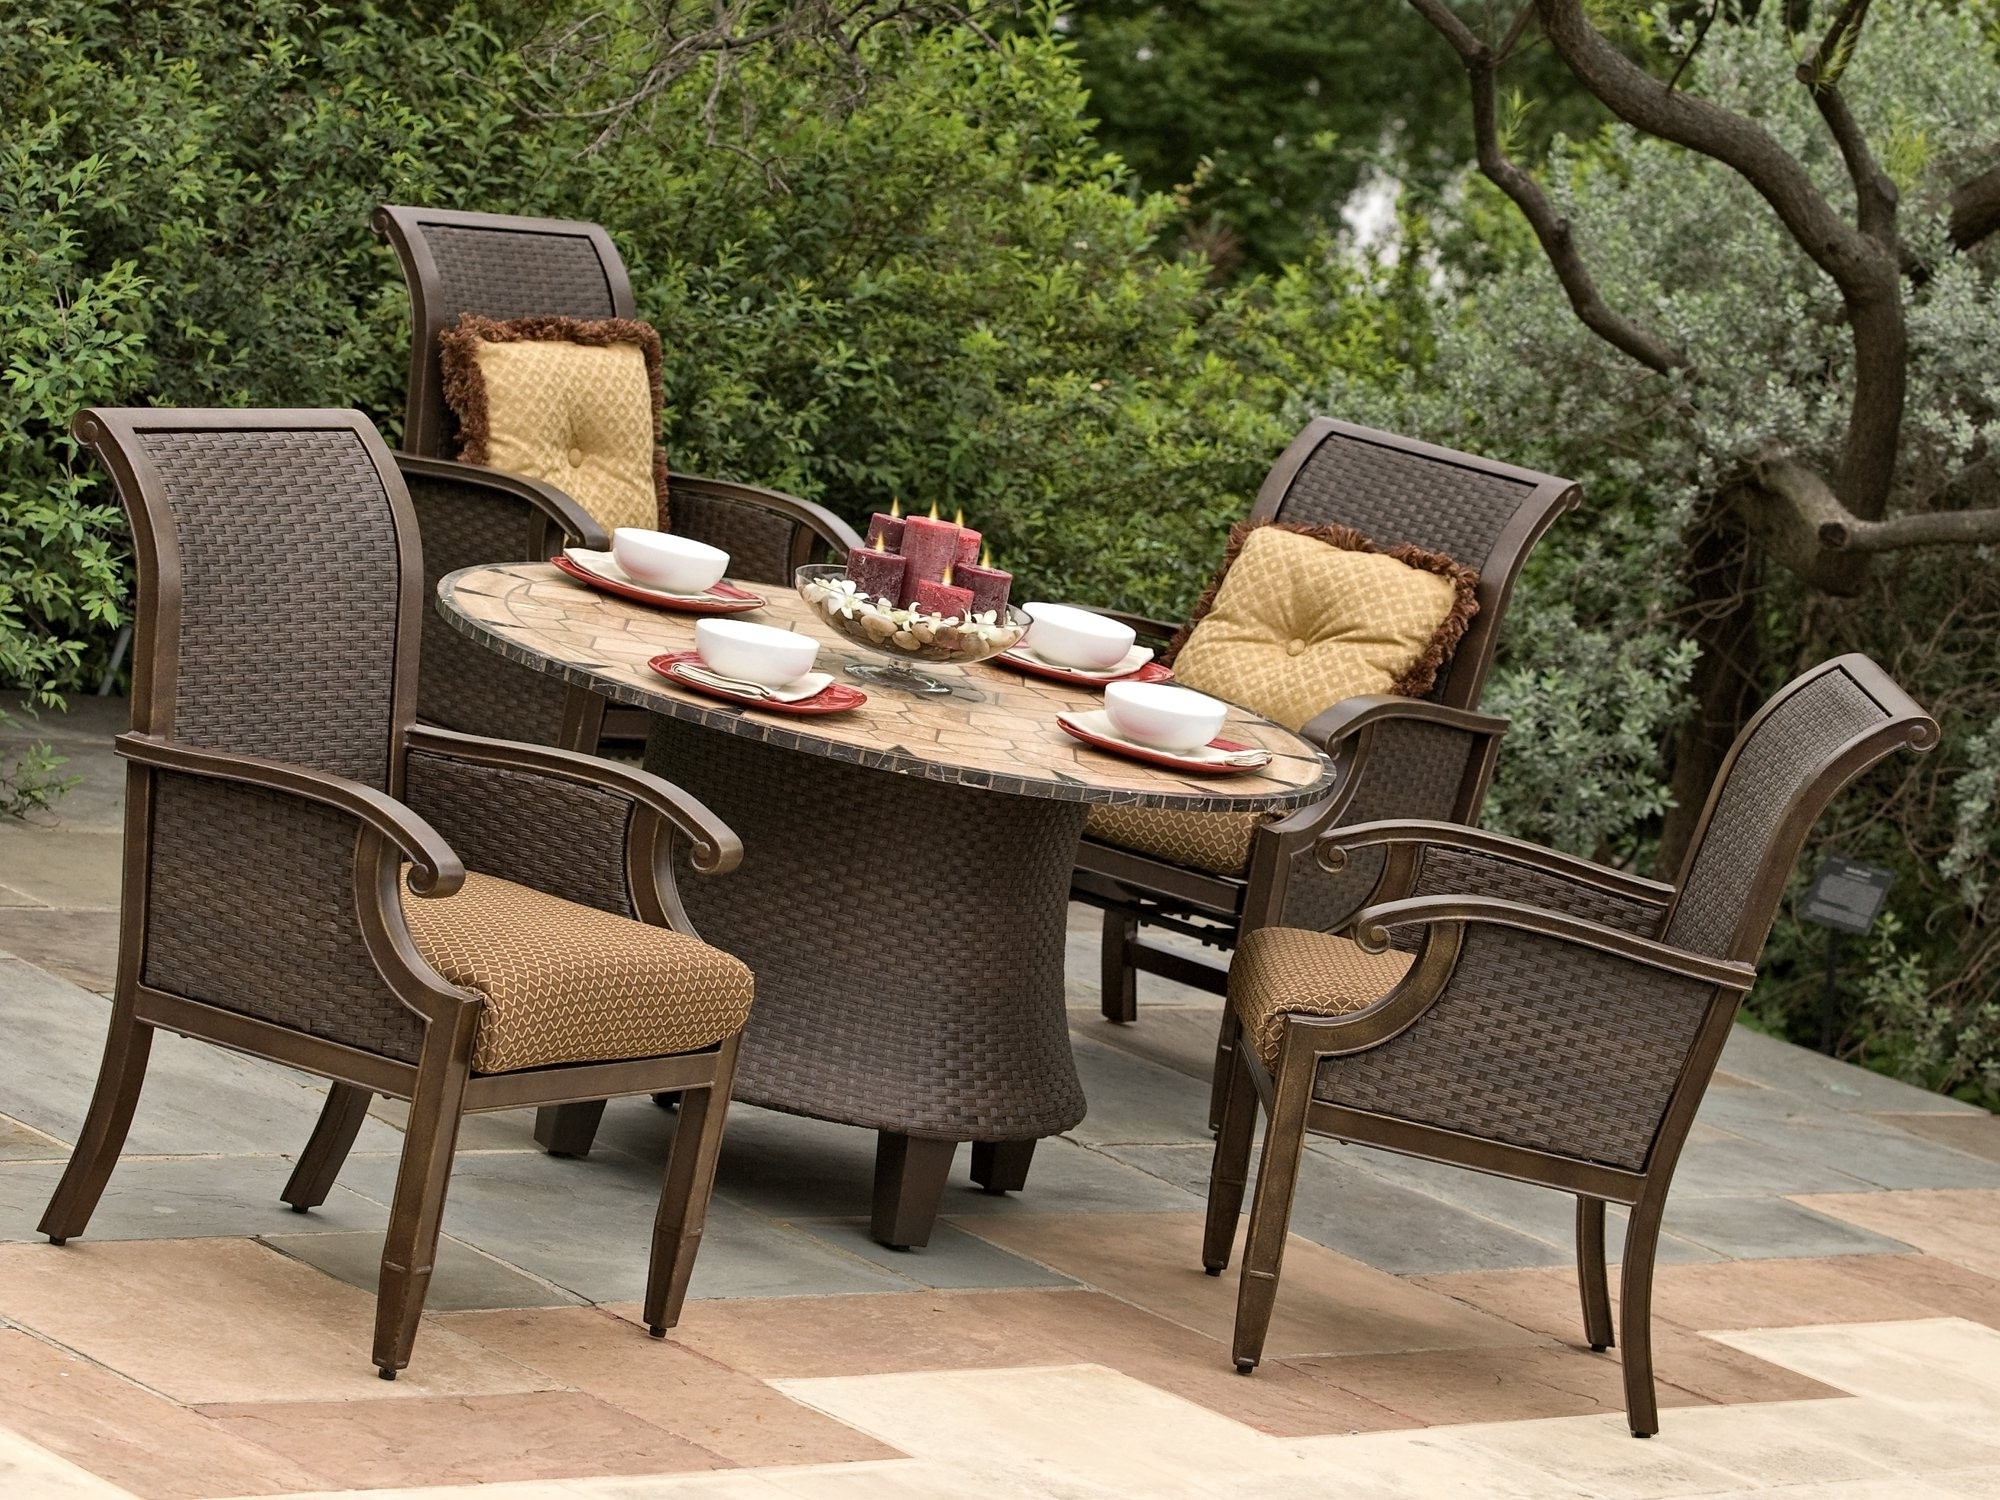 2017 Patio Conversation Sets With Dining Table Inside Marvelous Outdoor Patio Furniture 27 Kor Relaxed Location Dining  (View 1 of 15)